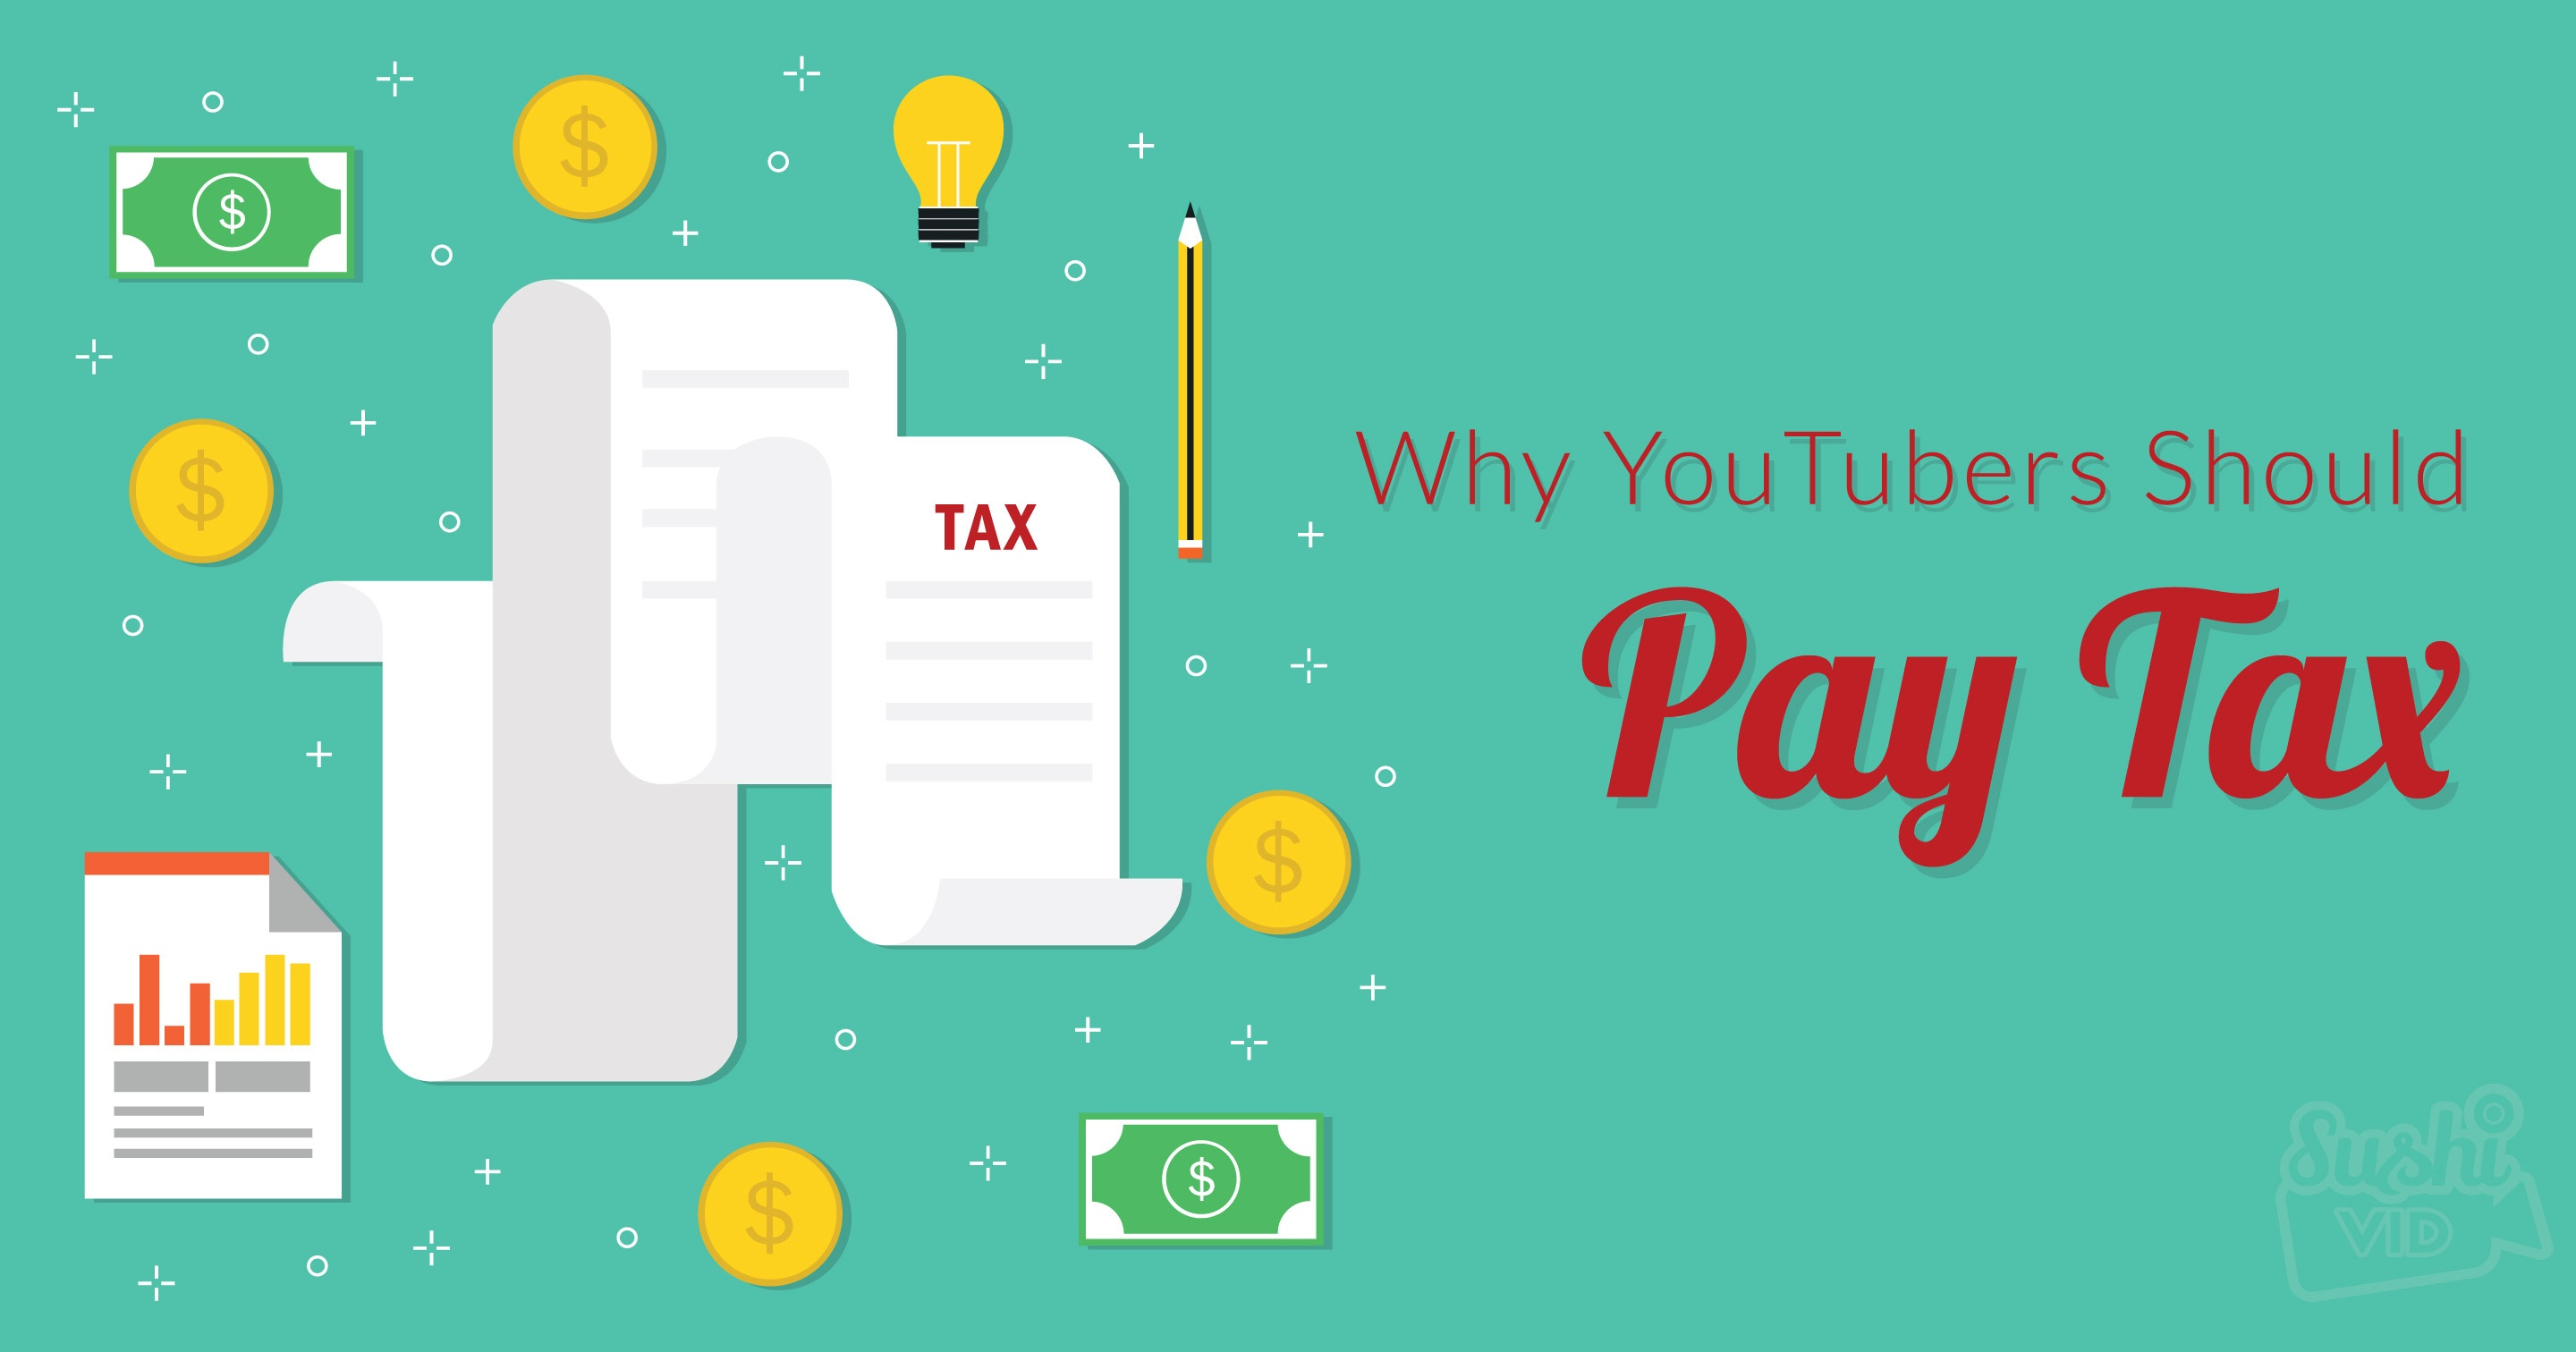 20160324 20  20why 20youtubers 20should 20pay 20tax 20  20influencer 20marketing